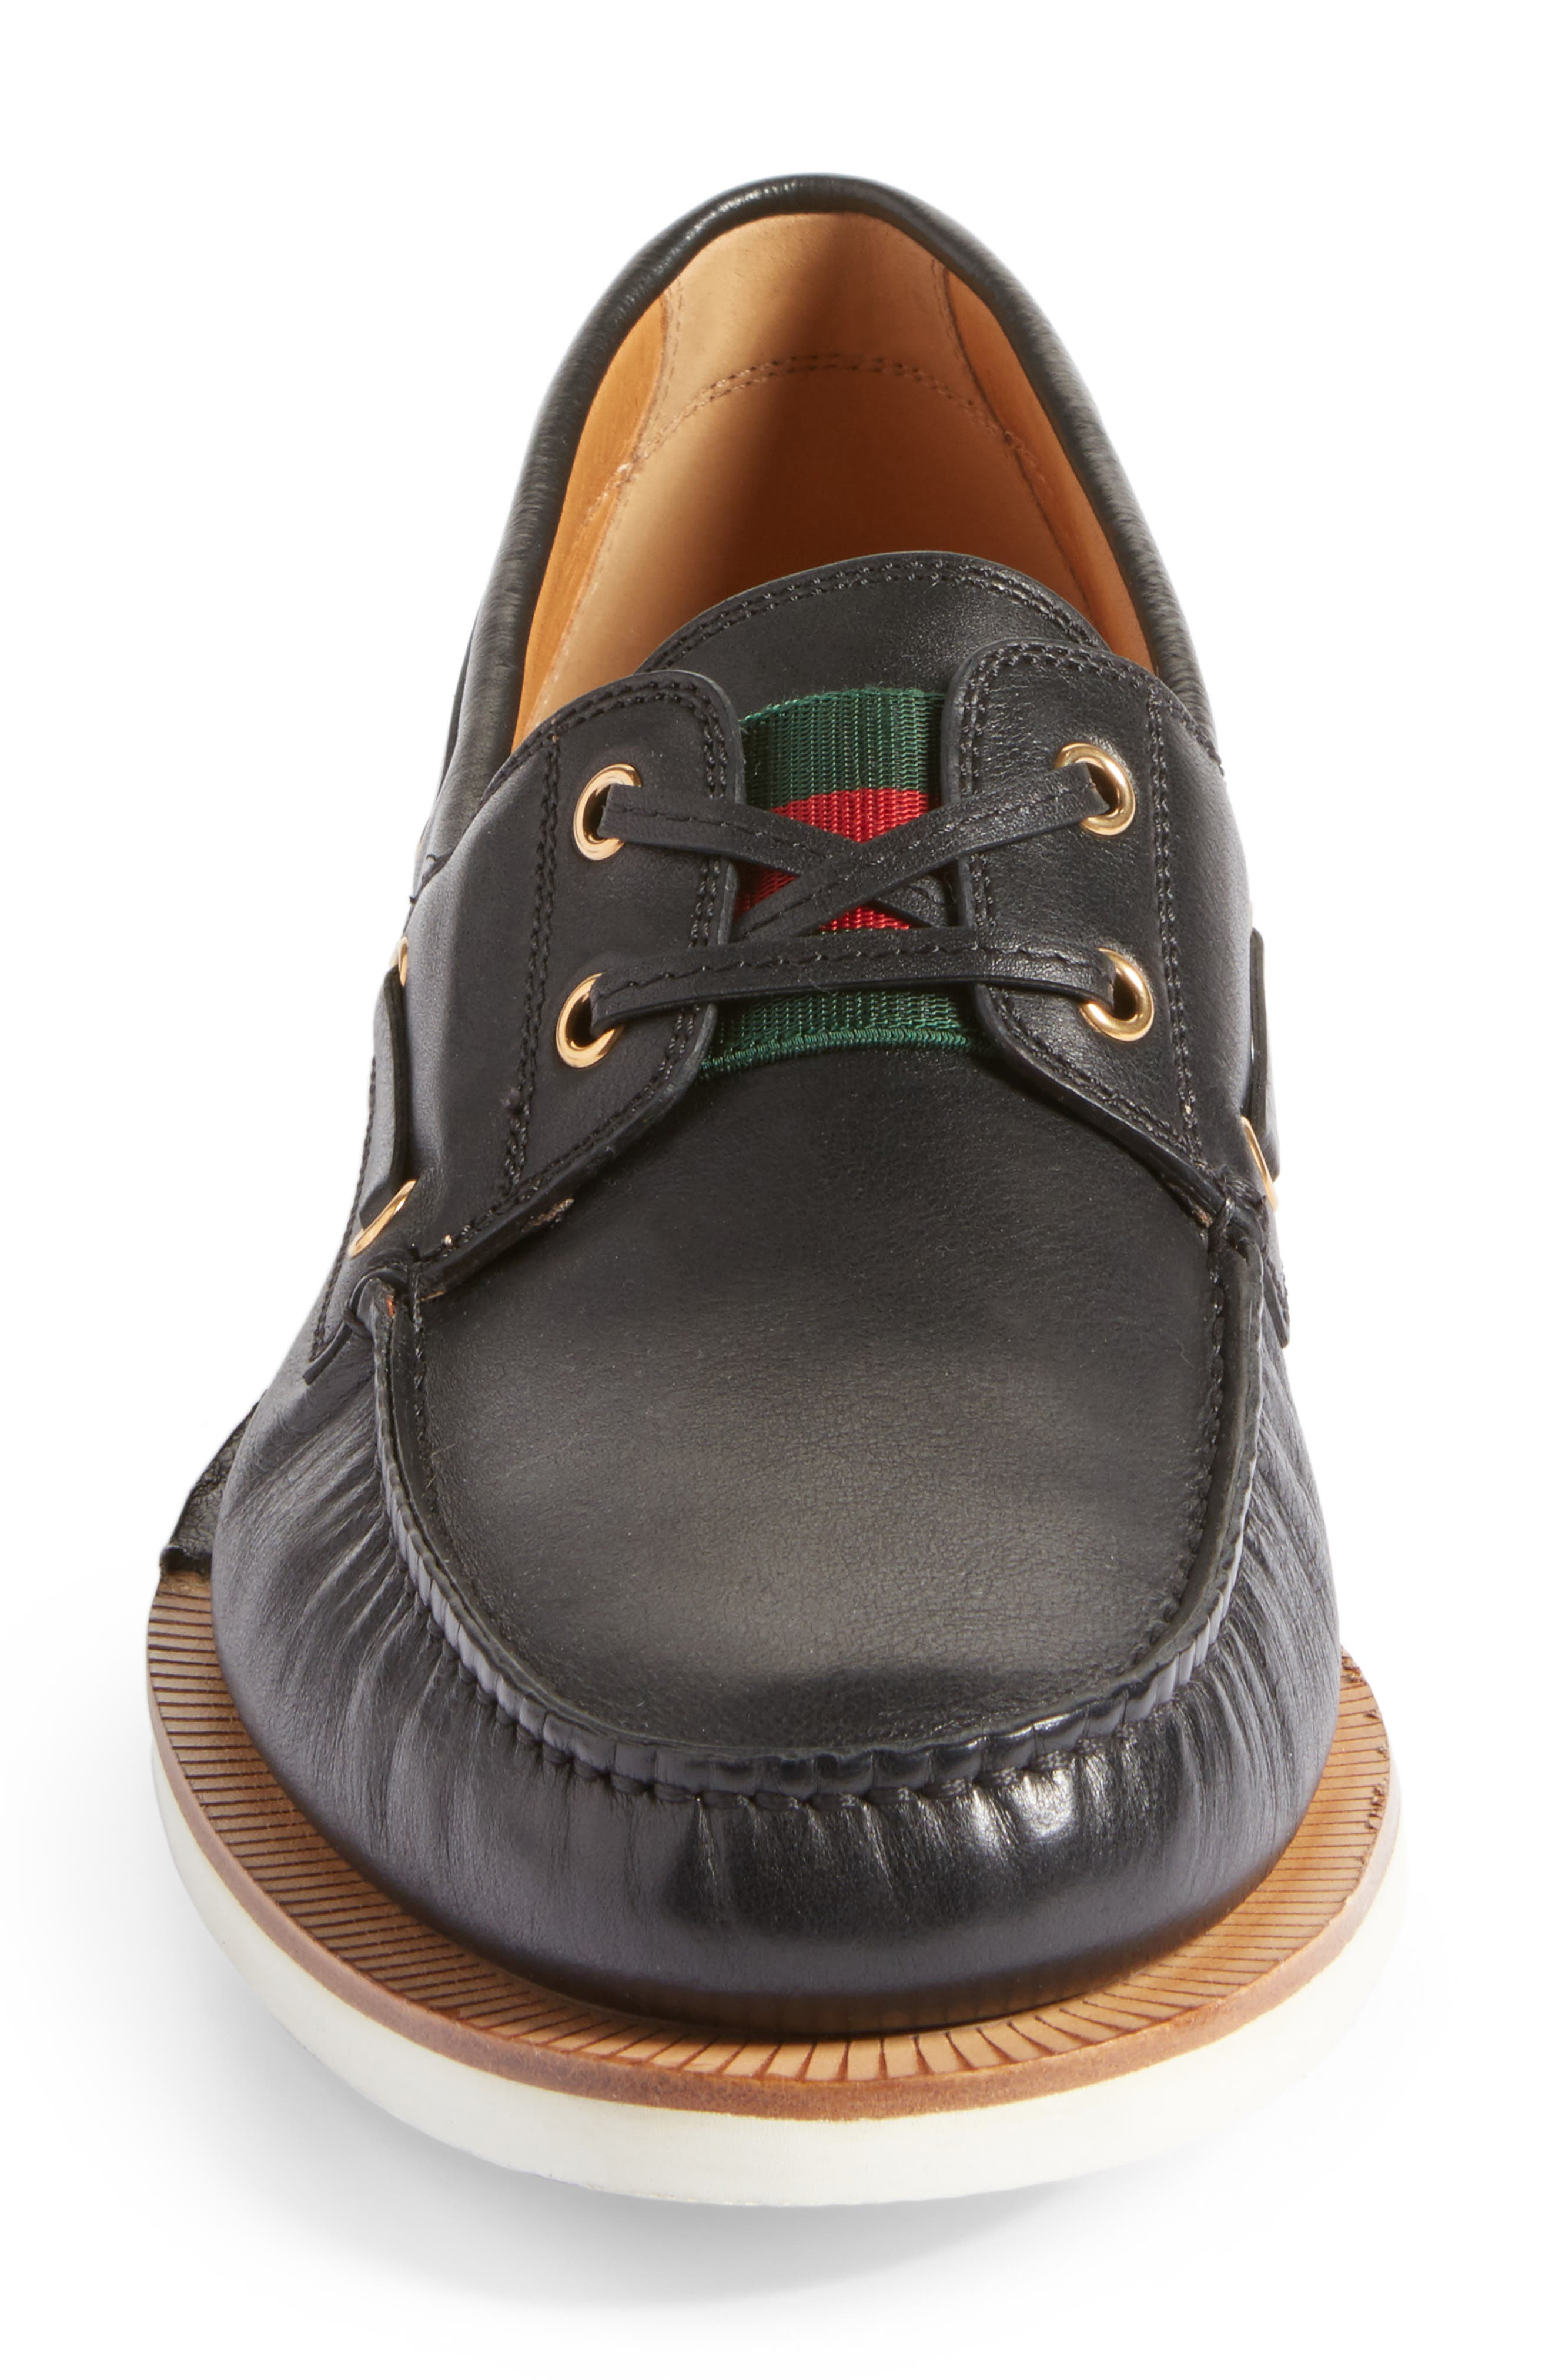 Delta Boat Loafer,                             Alternate thumbnail 4, color,                             009